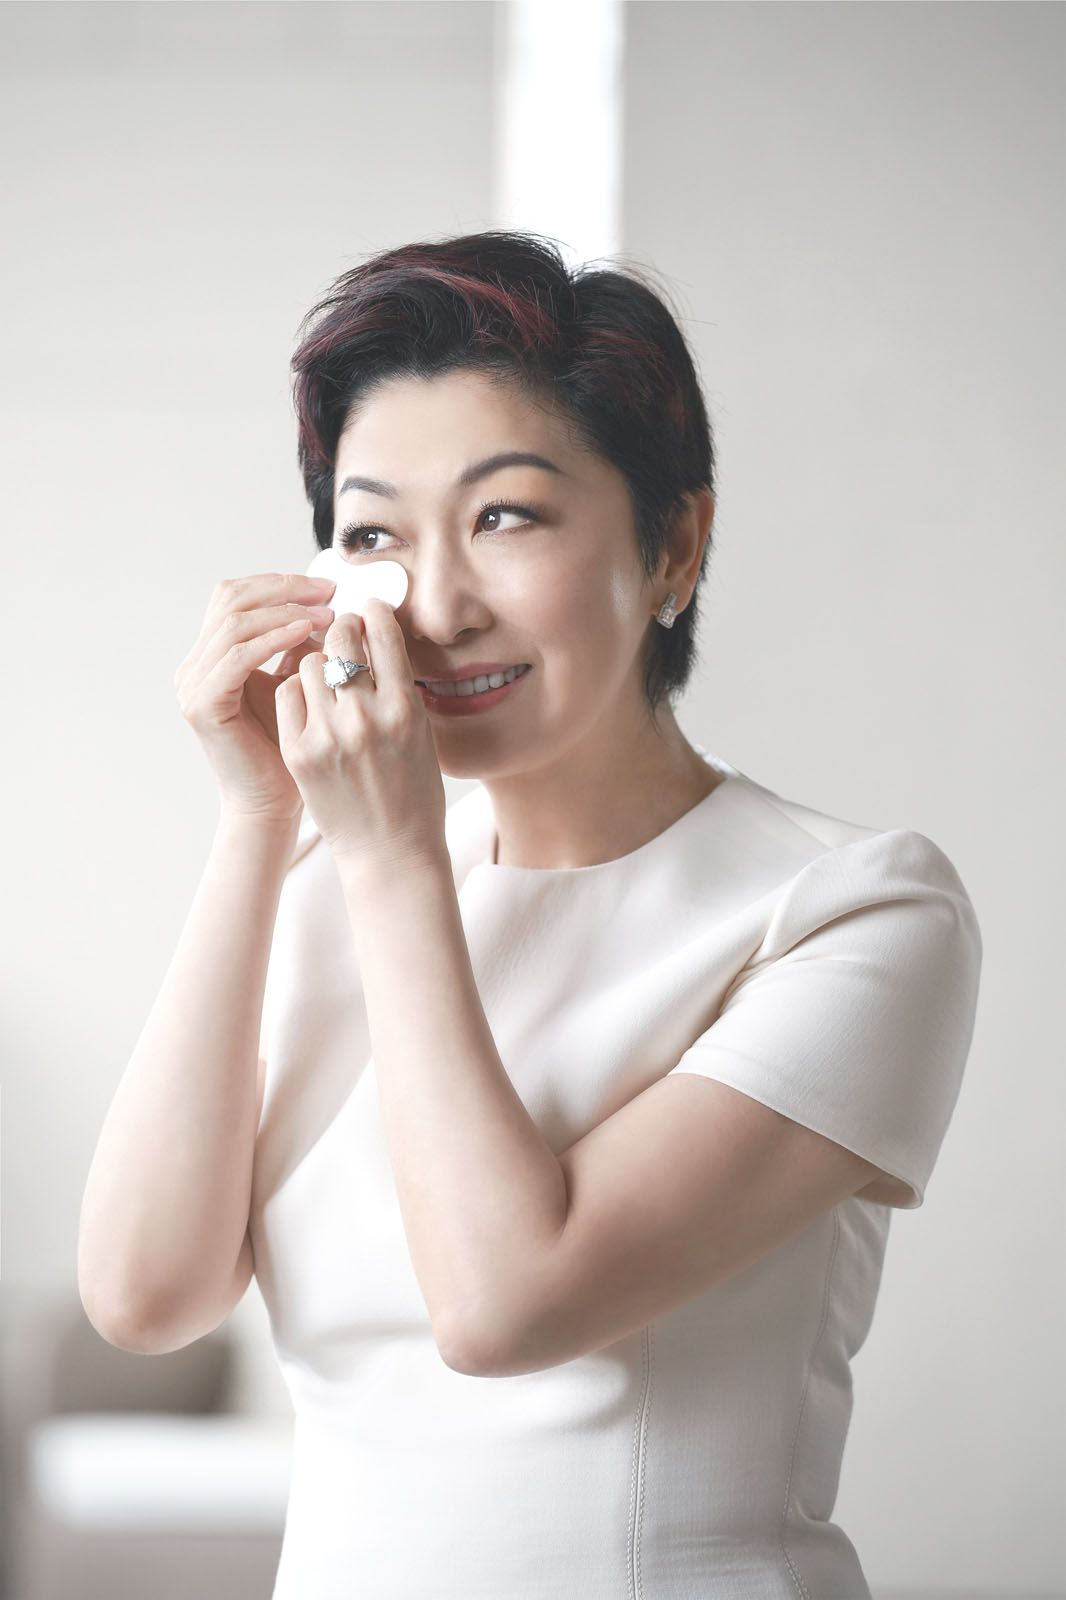 Women's Rights Advocate Jin Lu Reveals How She Achieves Radiant Skin With MTM Skincare